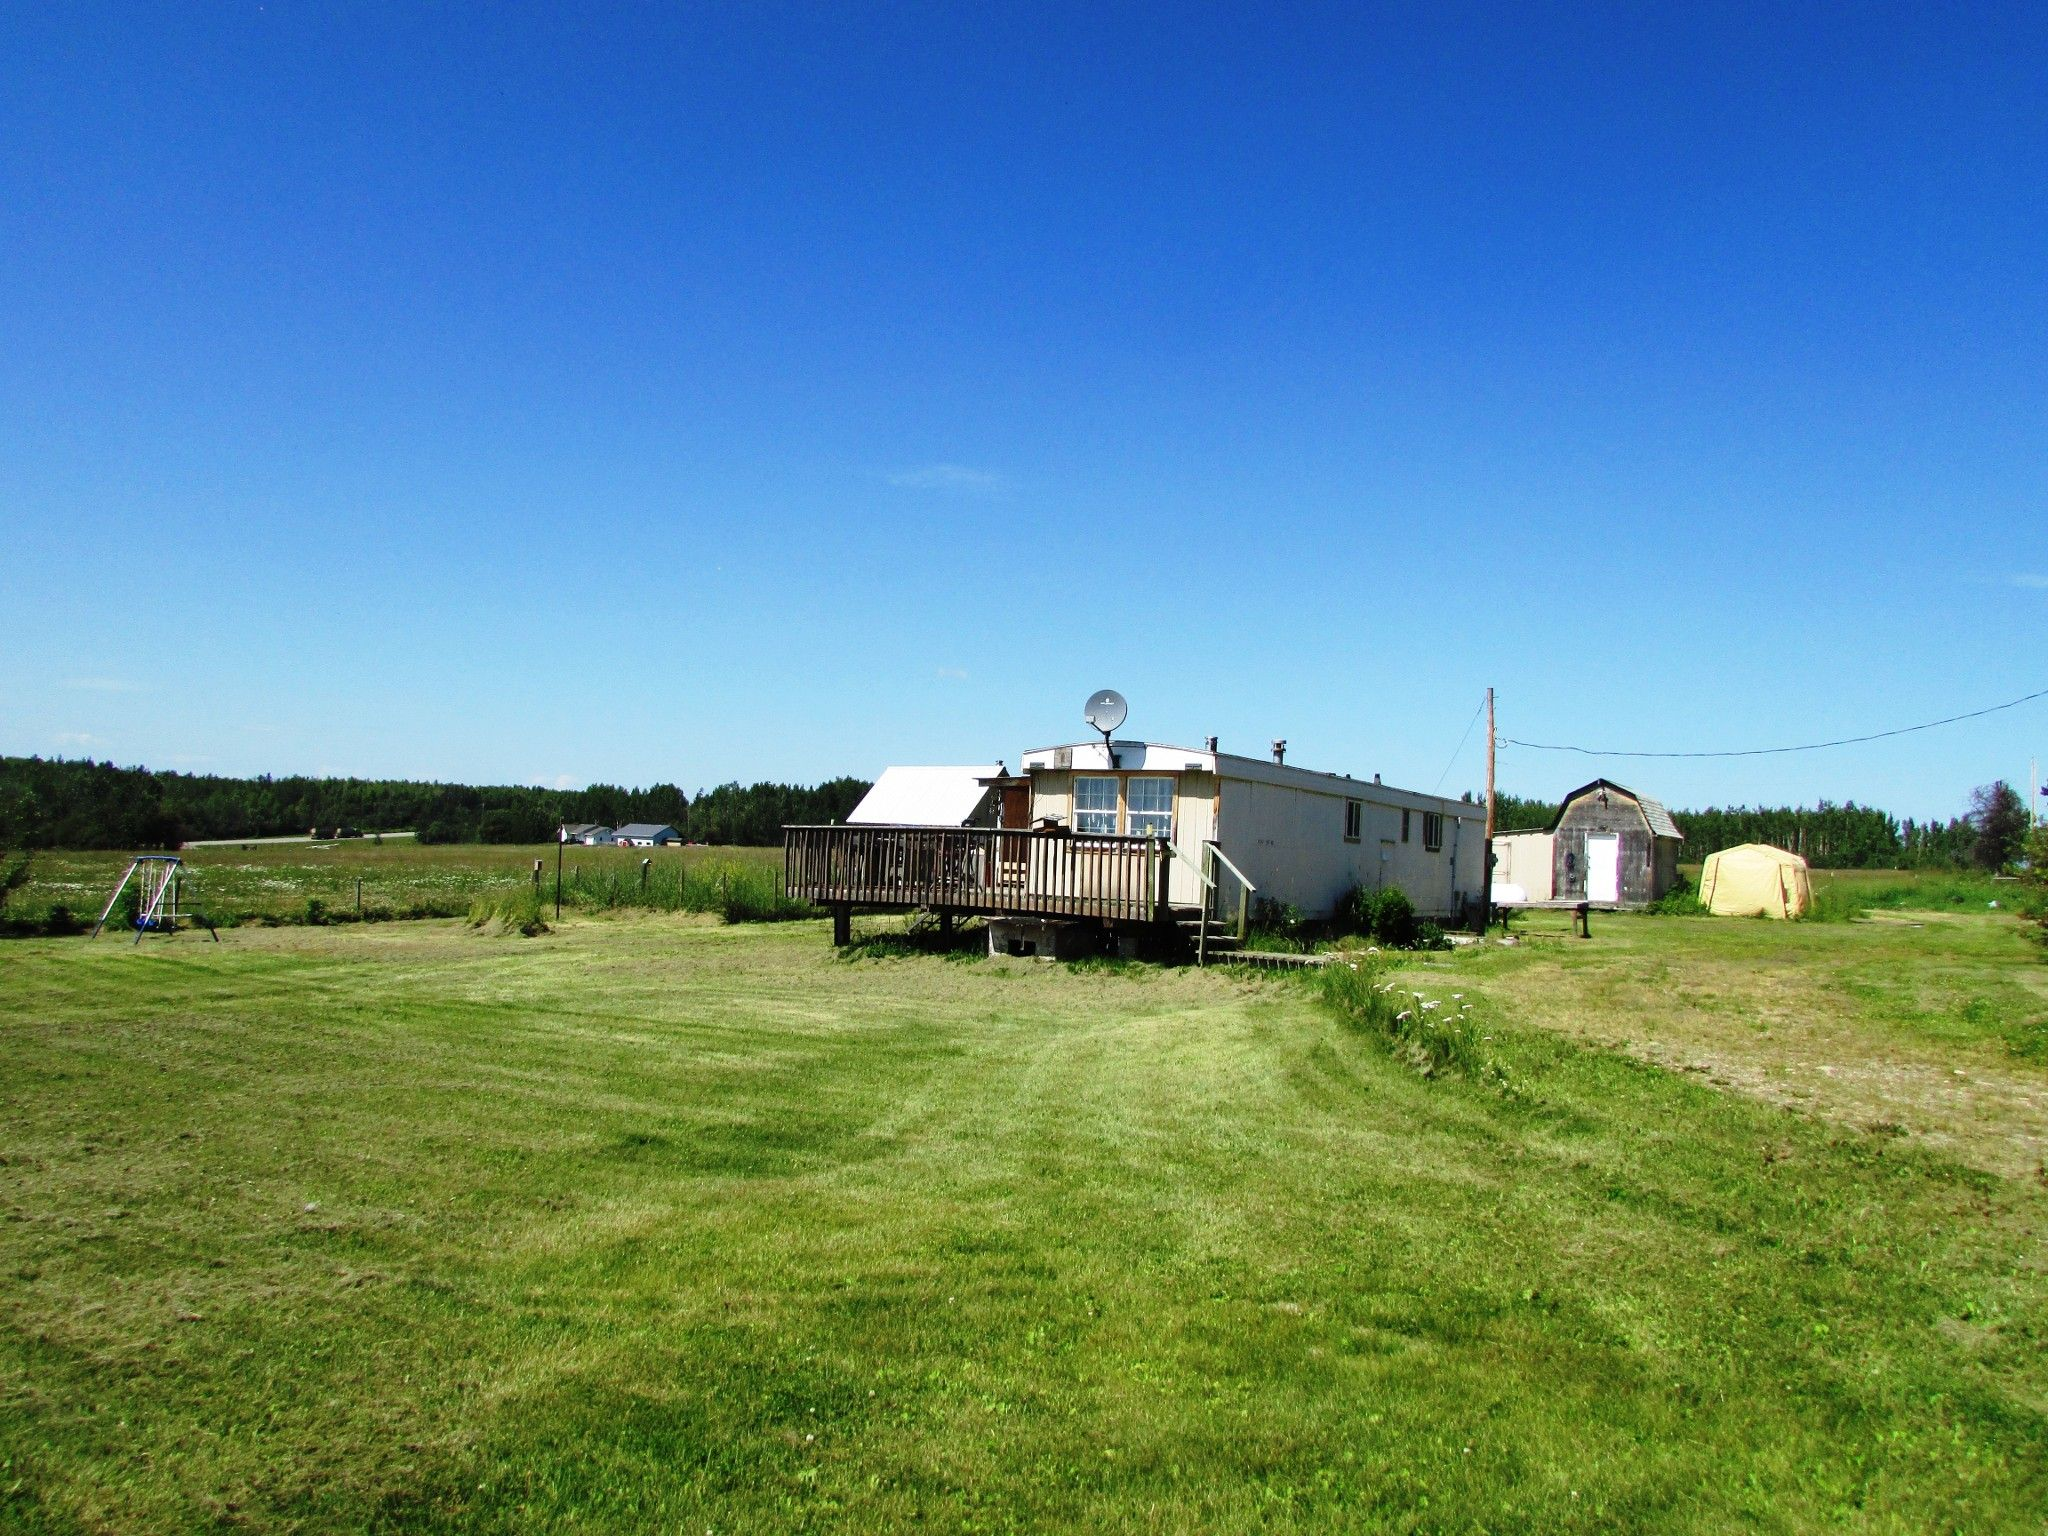 Main Photo: 3941 247 Road in Kiskatinaw: BCNREB Out of Area Manufactured Home for sale (Fort St. John (Zone 60))  : MLS®# R2327027